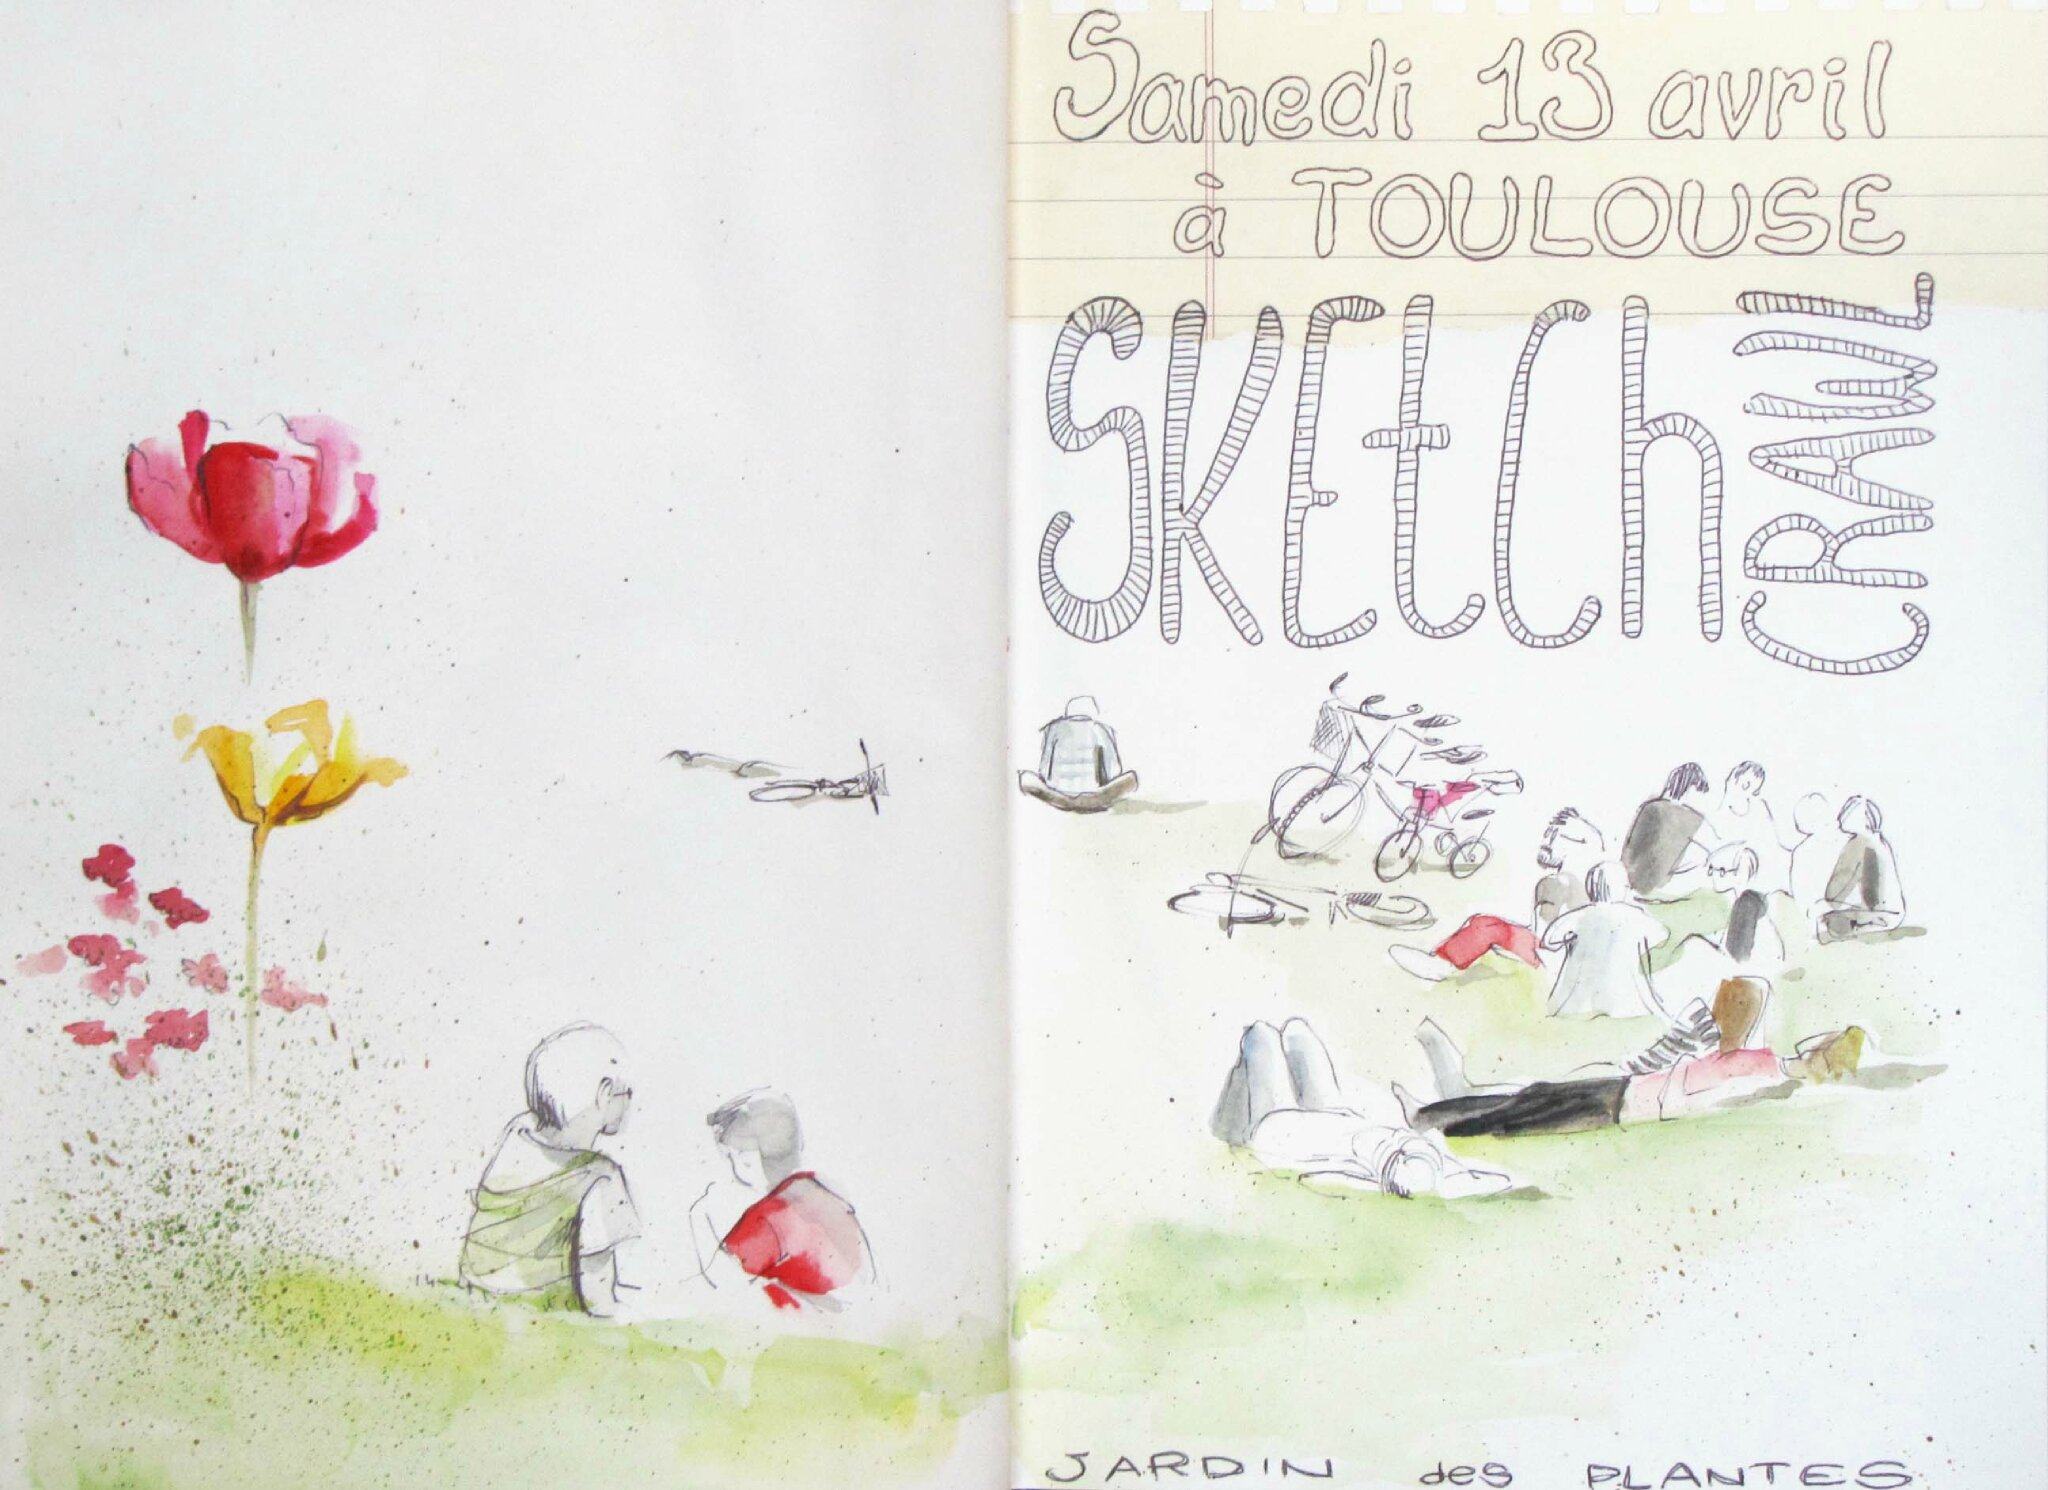 13 avril 2013 : sketchcrawl à Toulouse